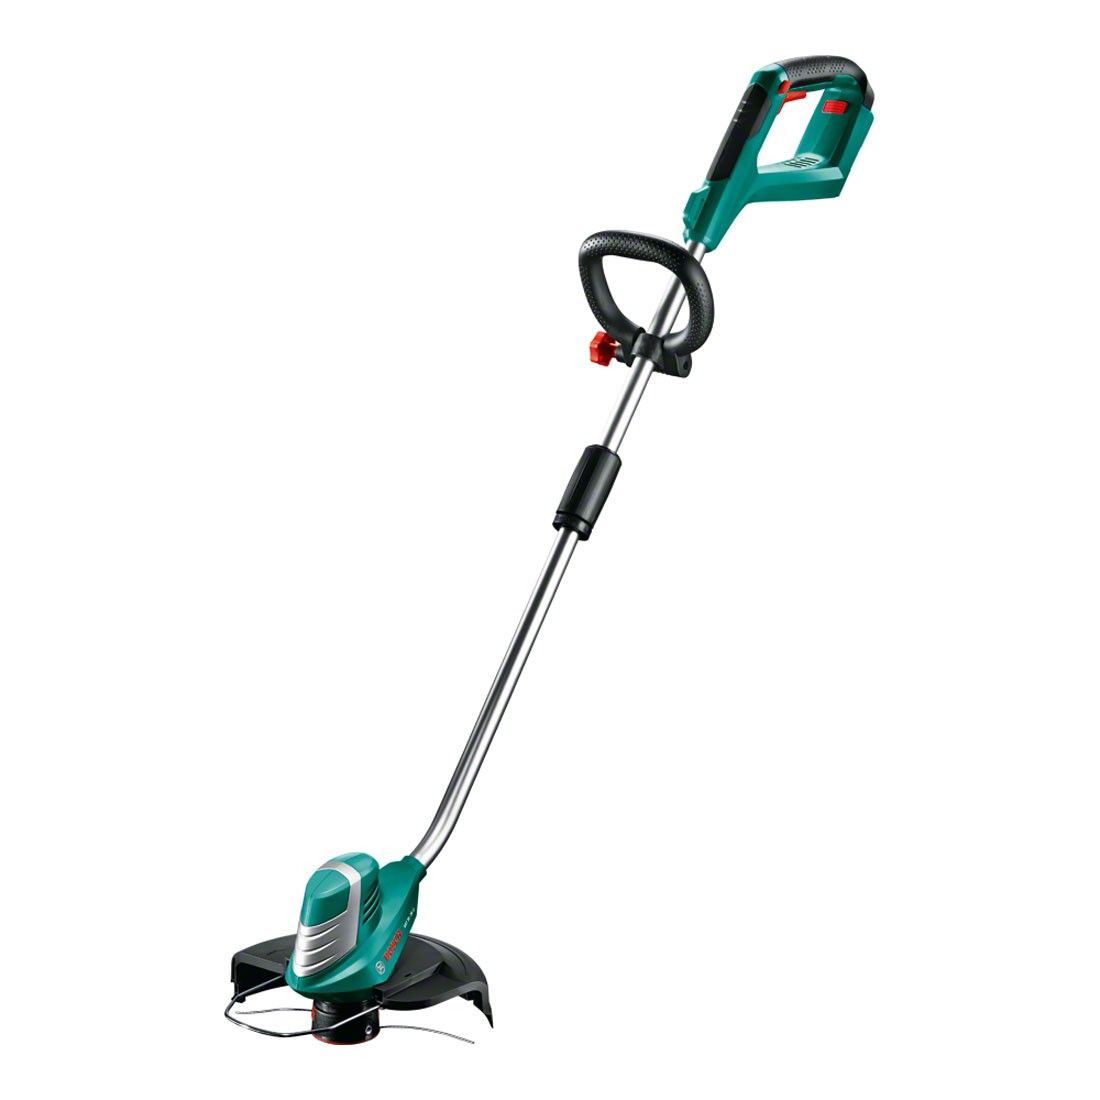 Bosch Green Art 30 36 Li 36v Cordless Grass Trimmer Body